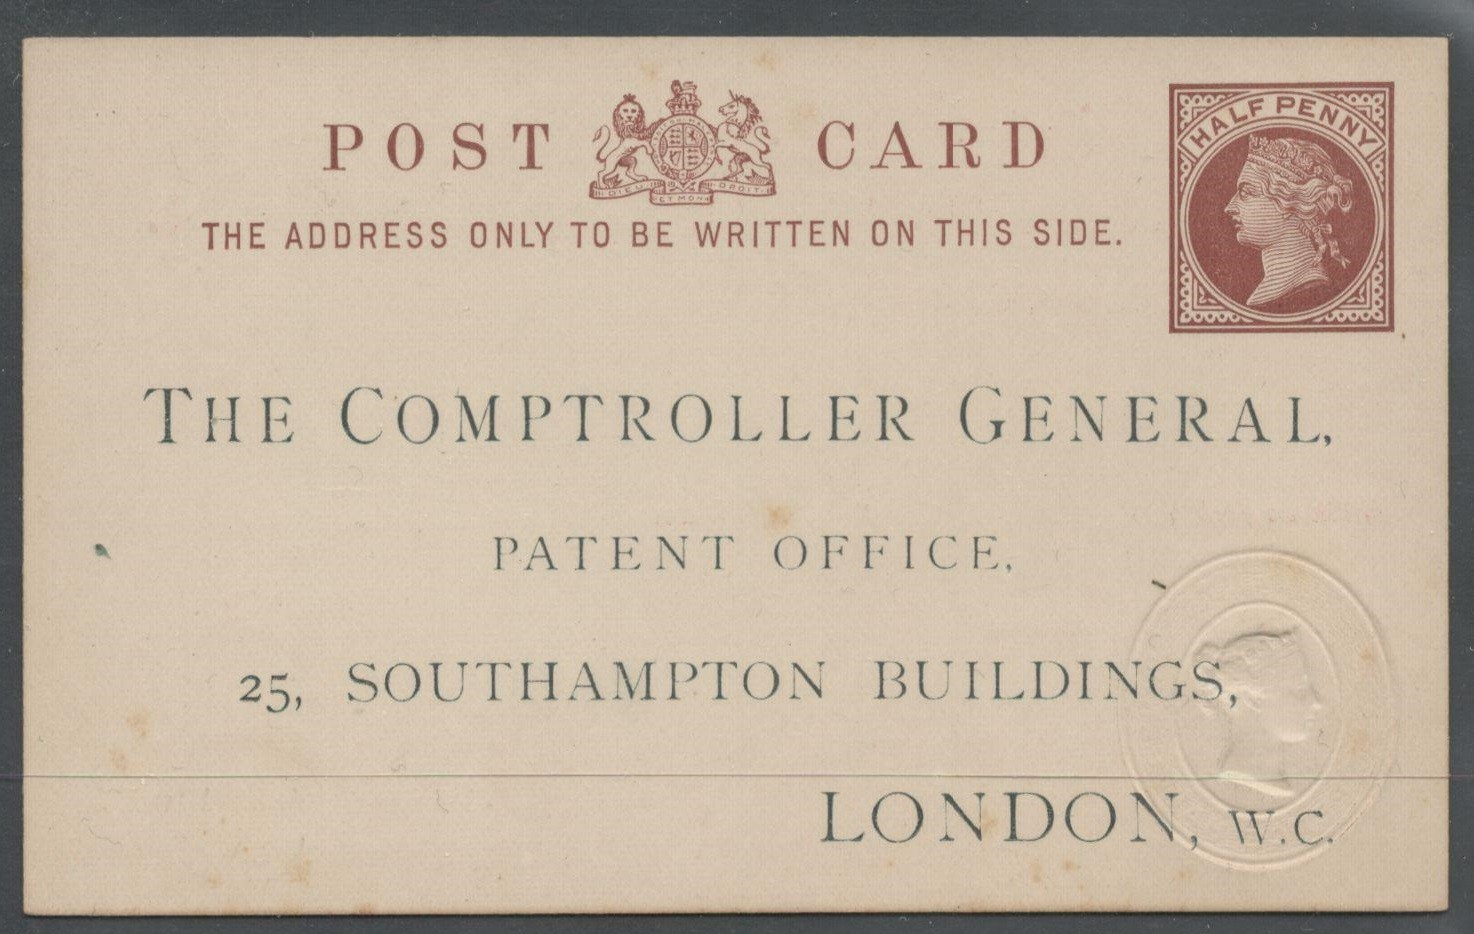 POSTAL STATIONERY POST CARD PATENT FORM QUEEN VICTORIA - SEVEN PENCE HALFPENNY PATENT REVENUE STAMP - Image 2 of 2